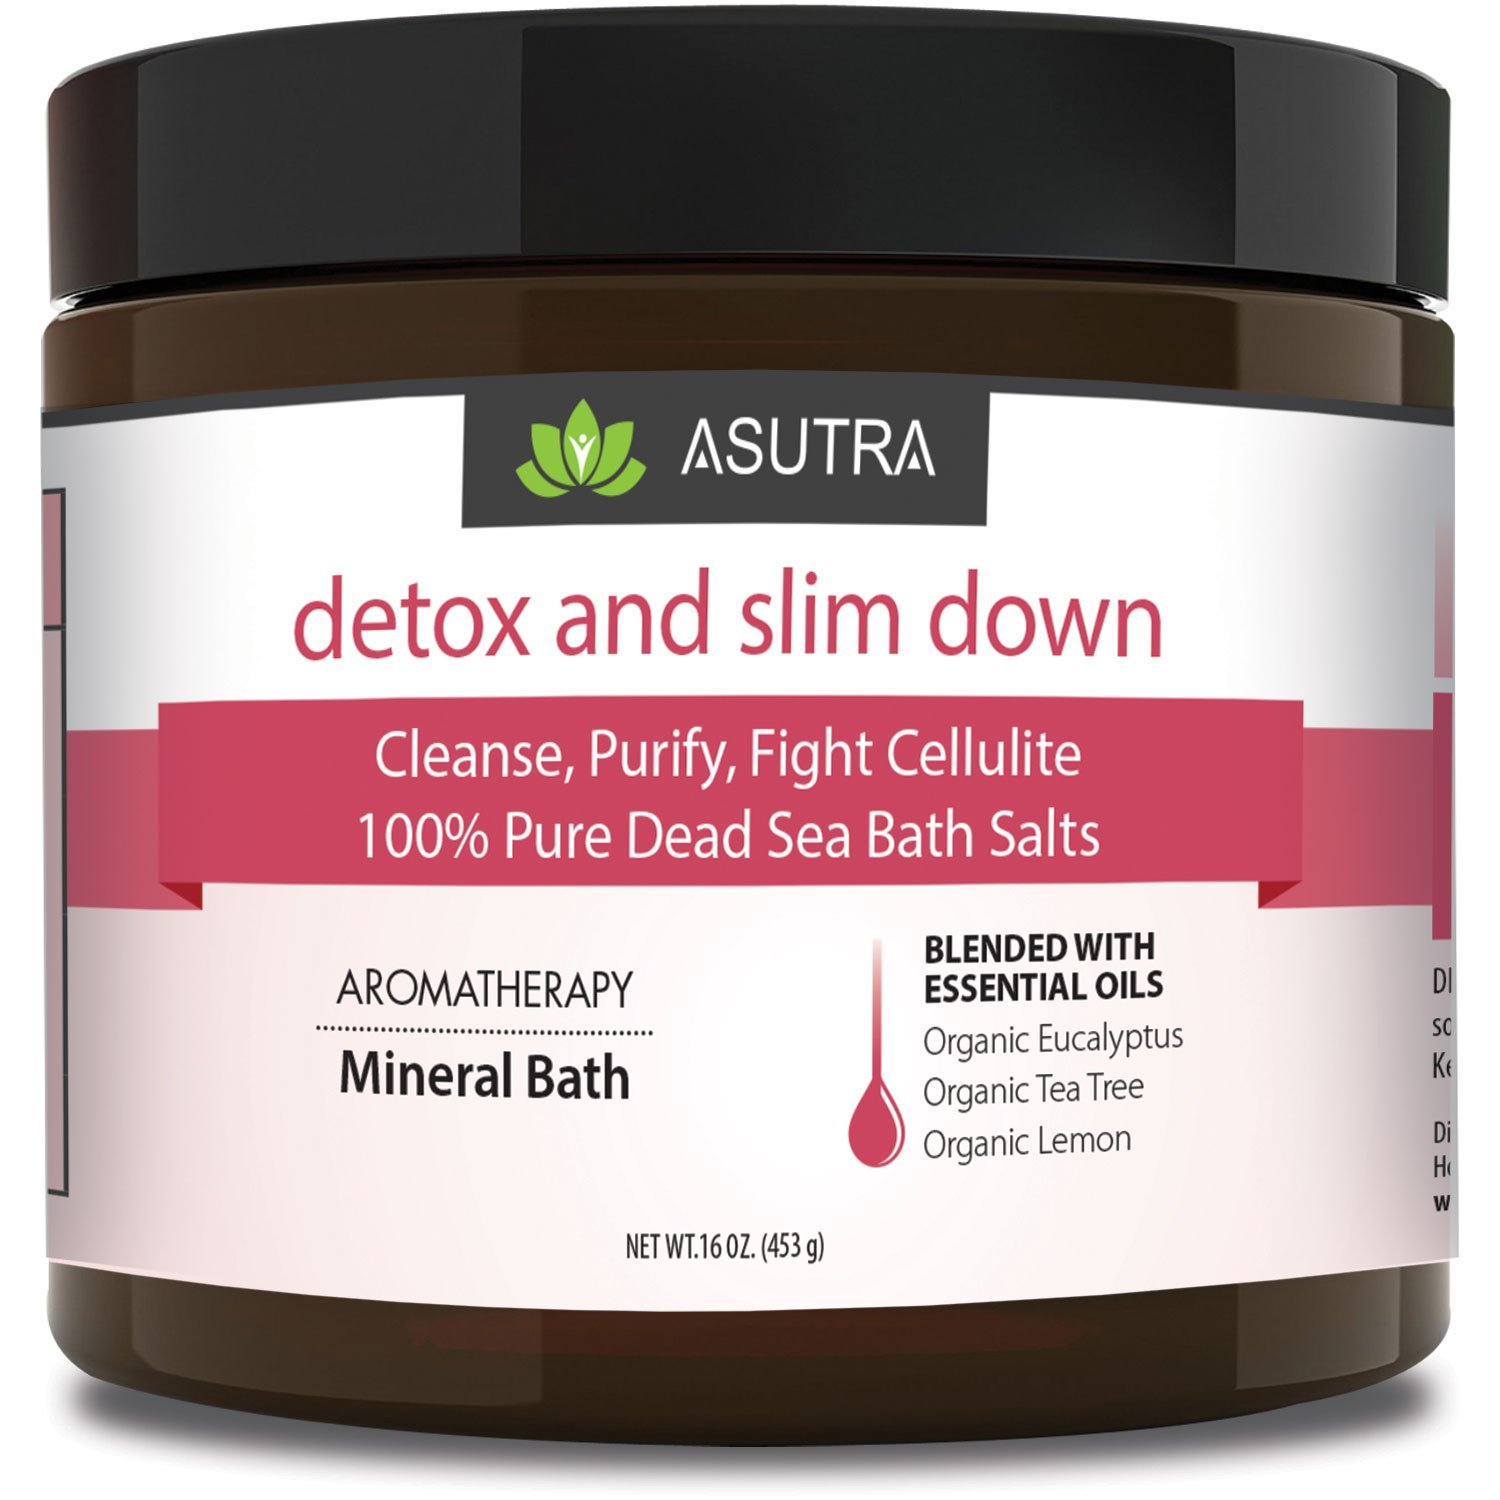 ASUTRA DETOX & SLIM DOWN - 100% Pure Dead Sea Bath Salts/Cleanse, Purify & Fight Cellulite/Rich In Vital Healing Minerals/Organic Essential Oils of Eucalyptus, Tea Tree and Lemon - 16oz